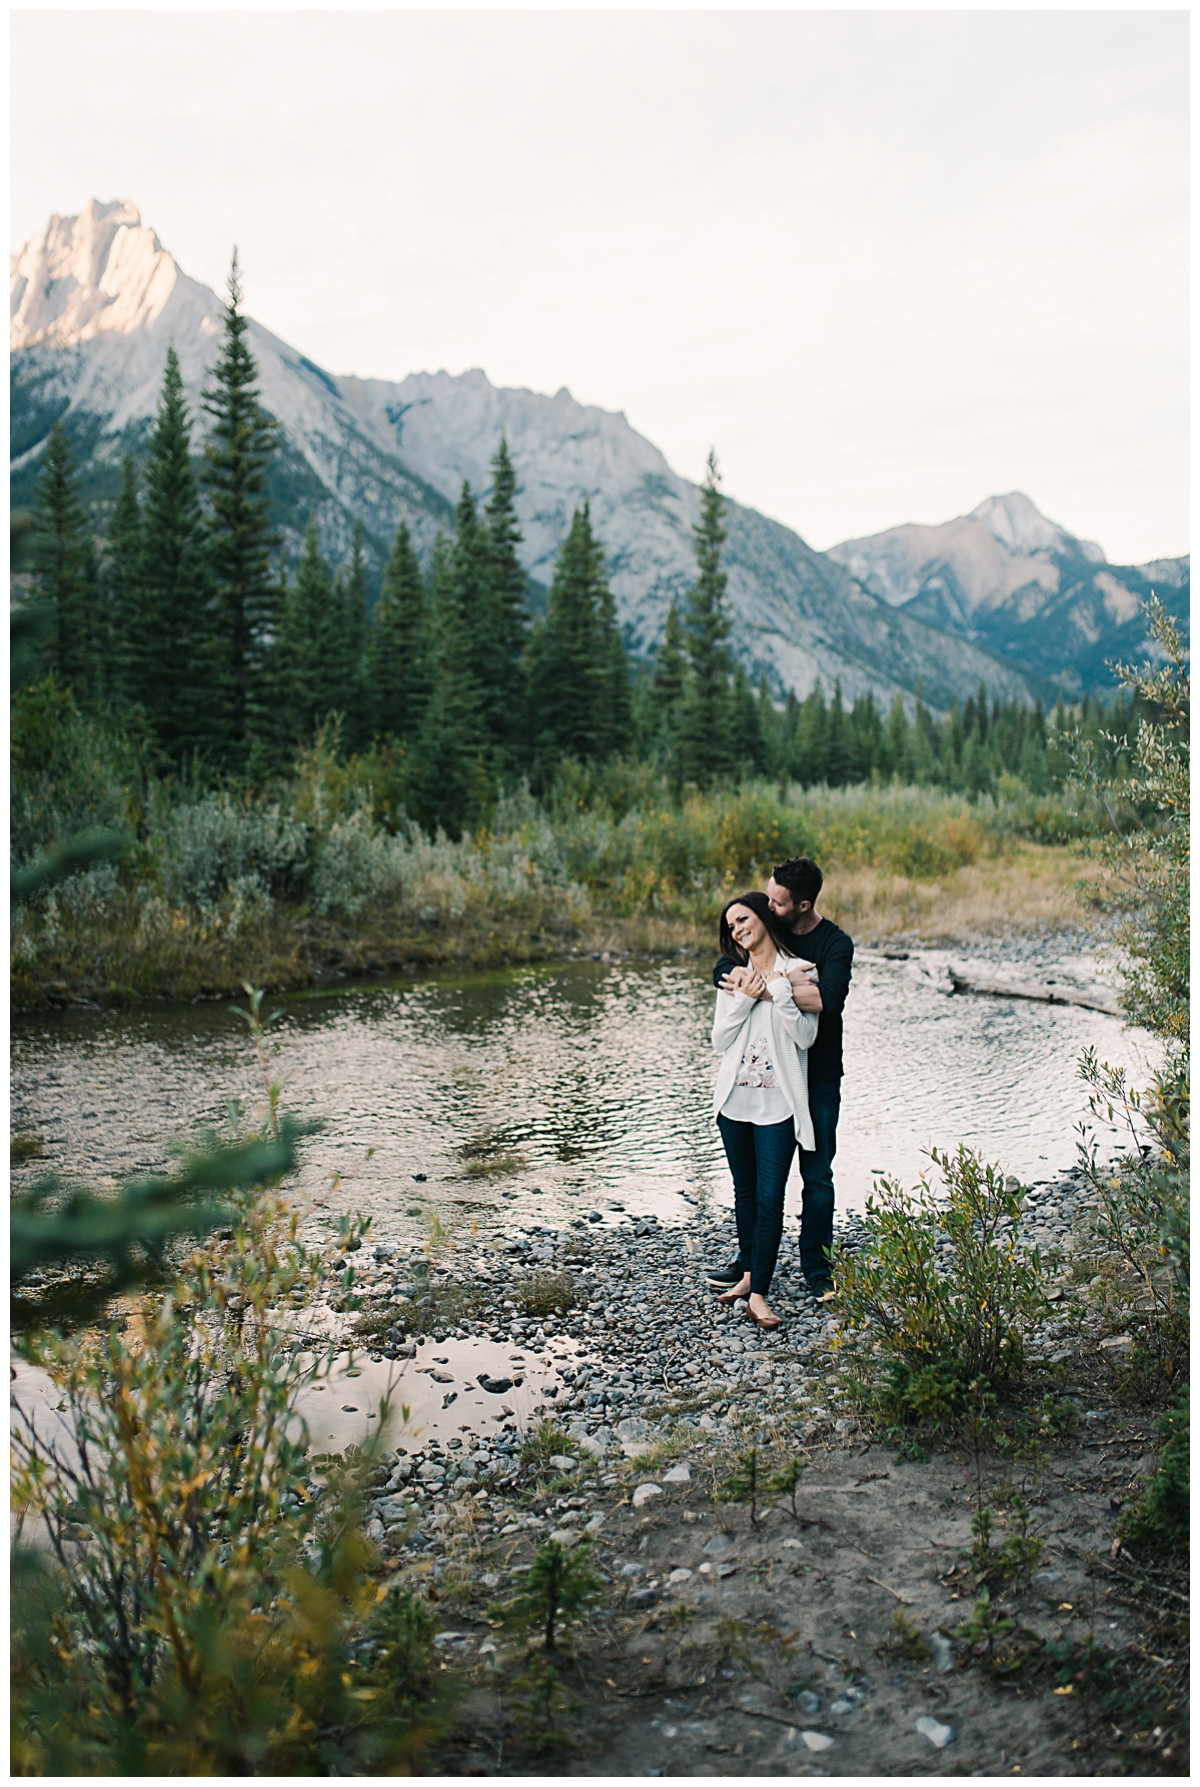 kananaskis_engagement (17 of 20).jpg